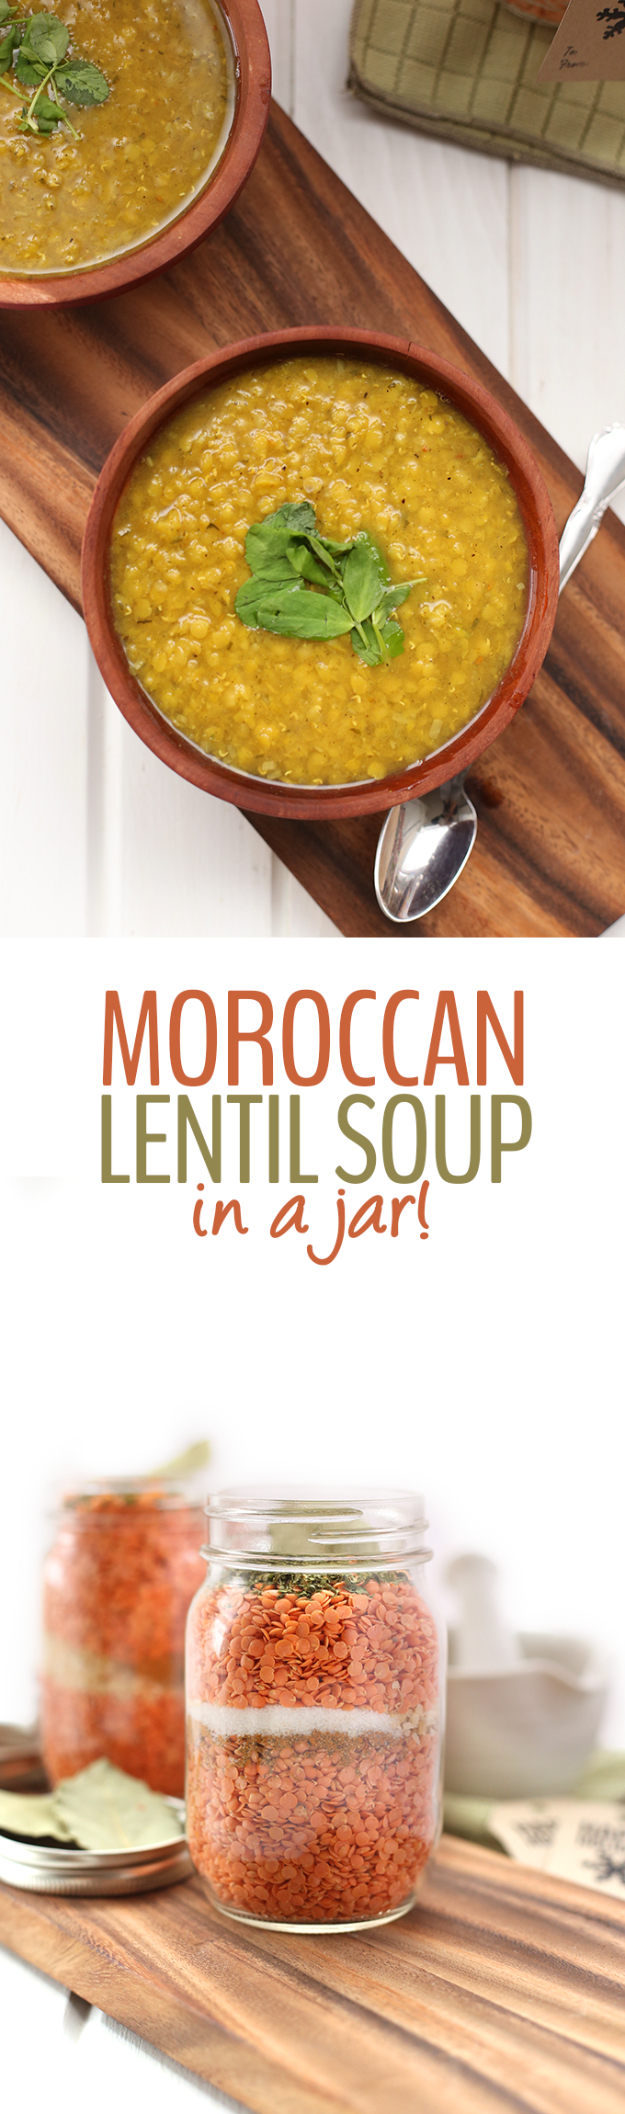 Best Recipes in A Jar - Moroccan Lentil Soup In A Jar - DIY Mason Jar Gifts, Cookie Recipes and Desserts, Canning Ideas, Overnight Oatmeal, How To Make Mason Jar Salad, Healthy Recipes and Printable Labels